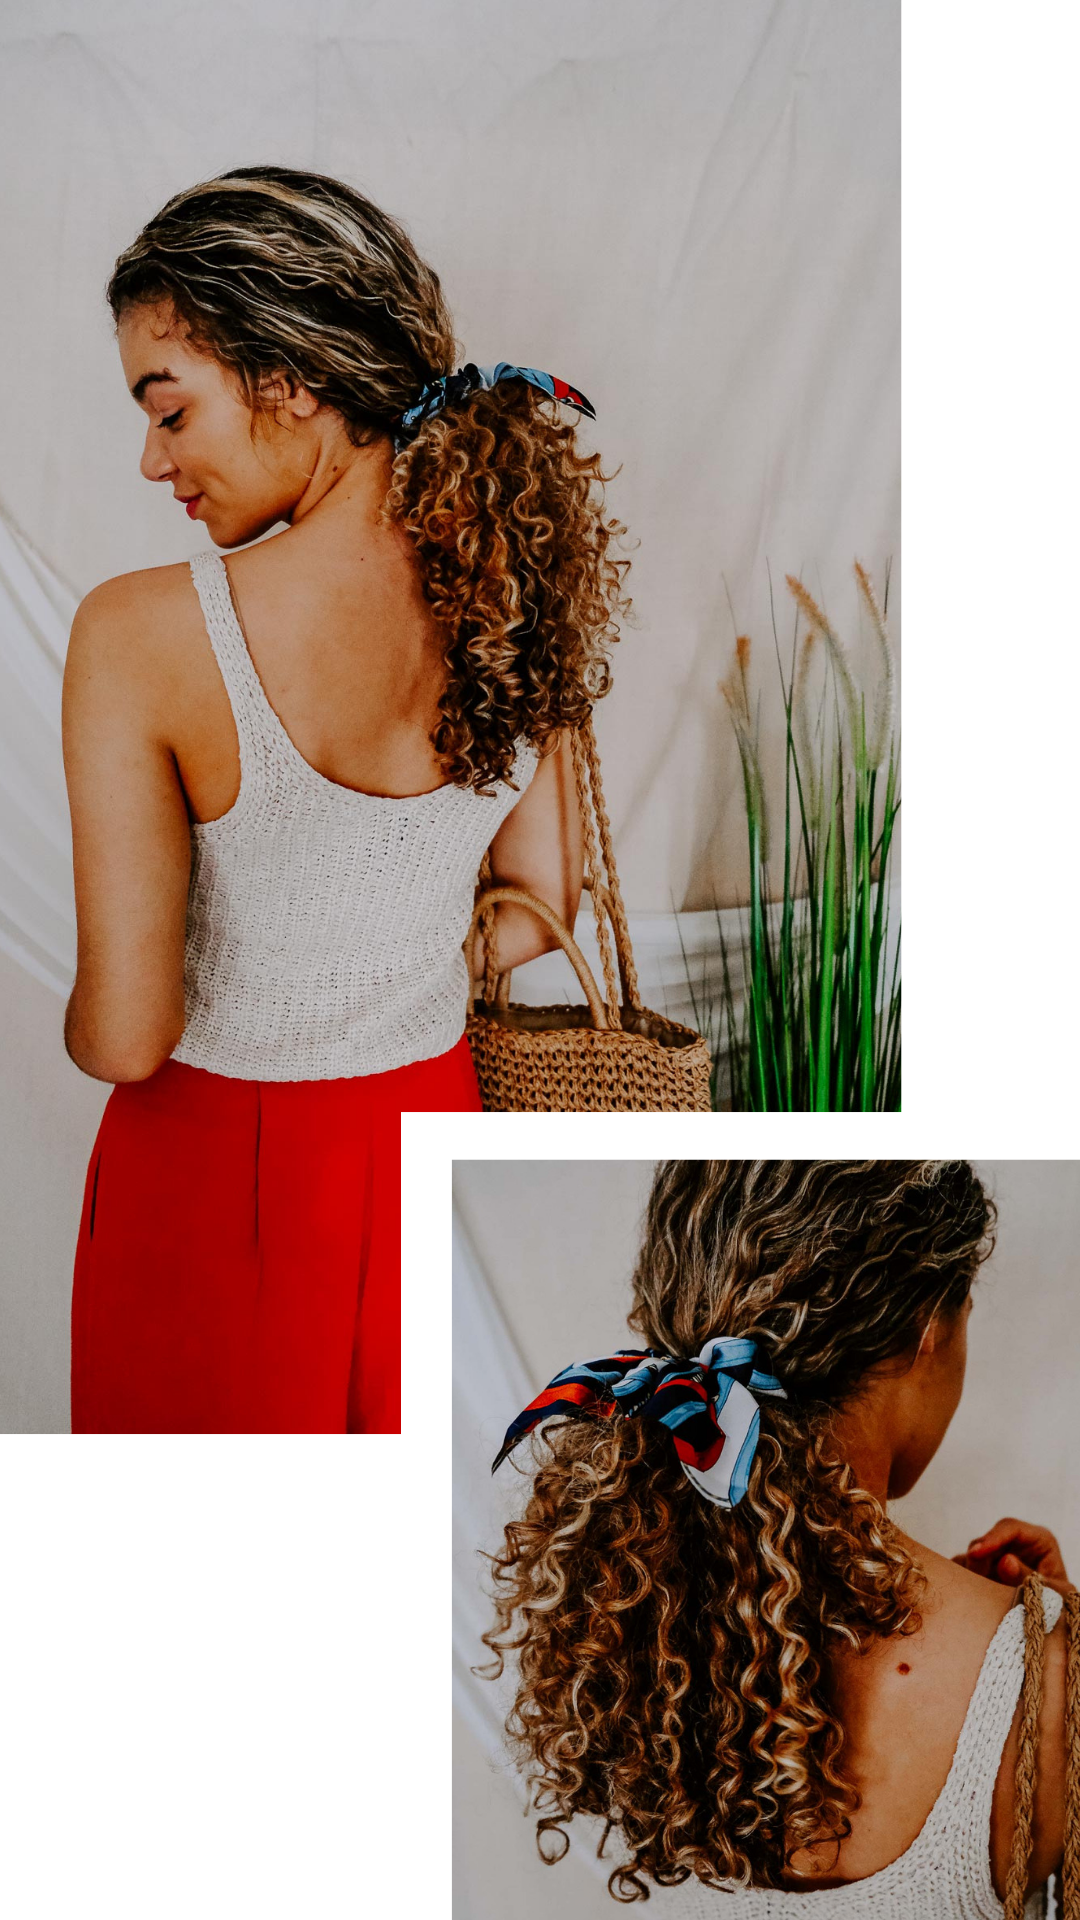 Hair Accessories That Will Make You Look Instantly Stylish My Chic Obsession Curly Hair Accessories Curly Hair Styles Hair Styles